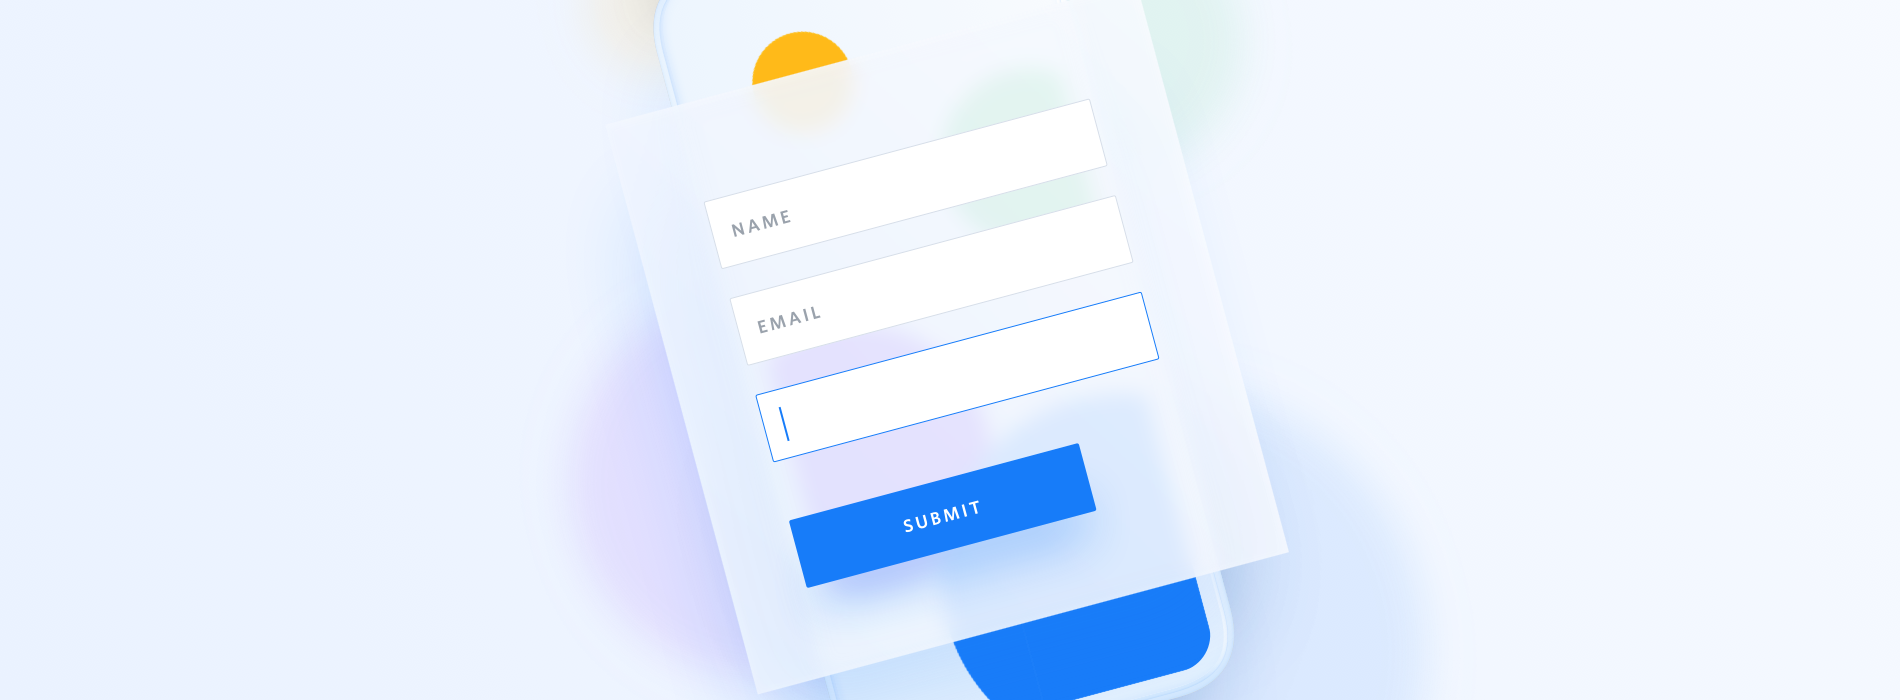 15 Mobile Form Design Strategies & Examples